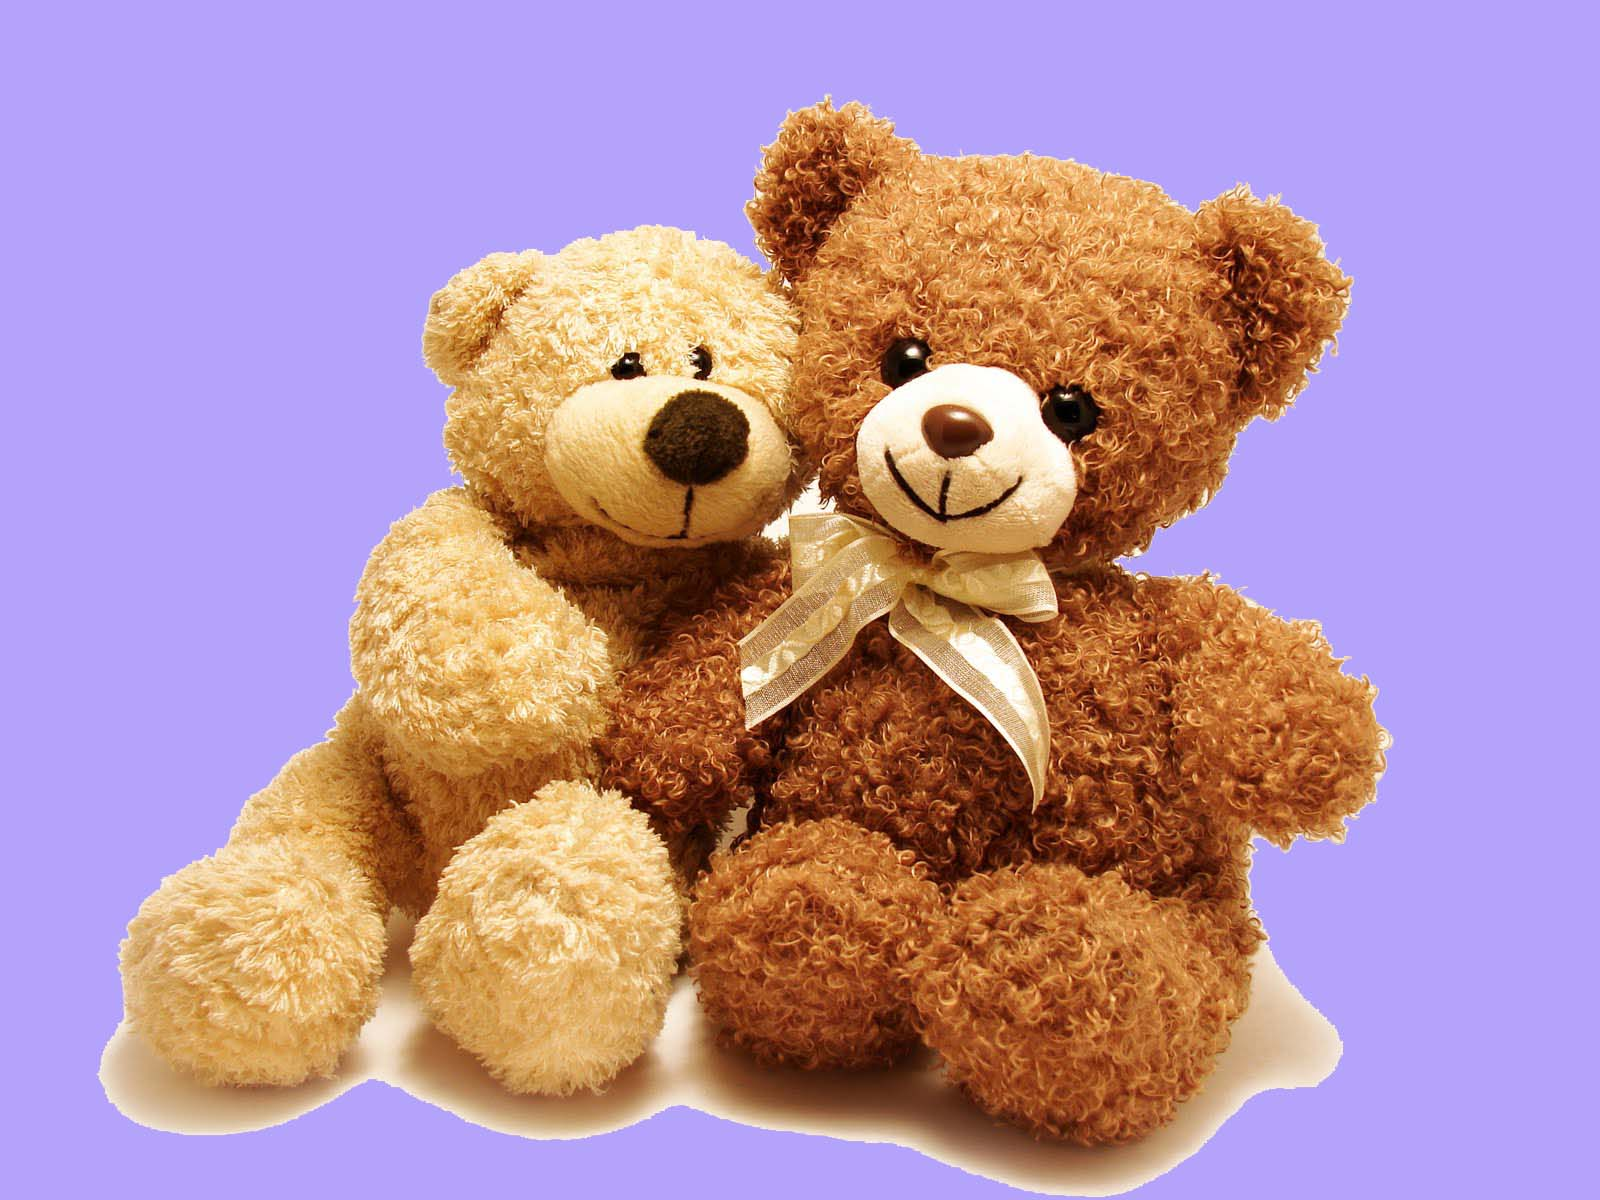 The fresh wallpaper lovely and beautiful teddy bear wallpapers teddy day nice collection of hd images izmirmasajfo